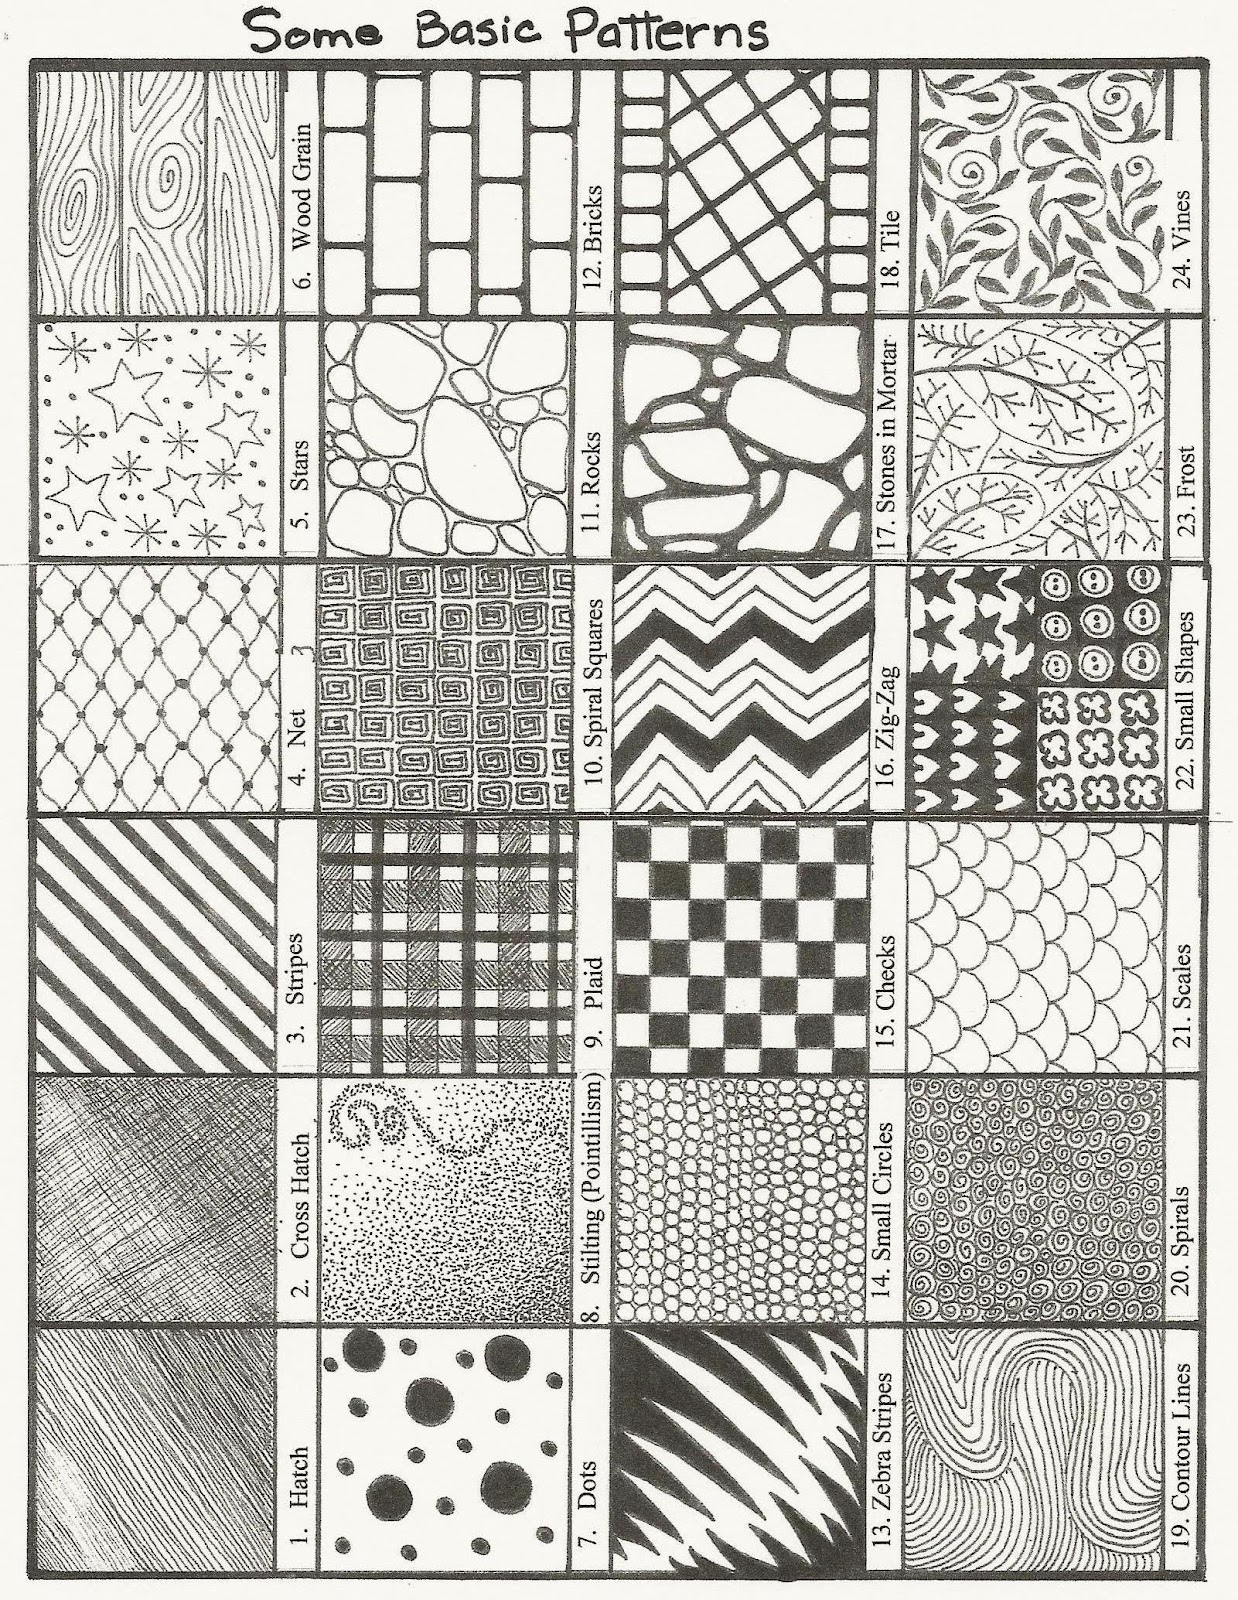 hoontoidly: Simple Tumblr Drawings Patterns Images